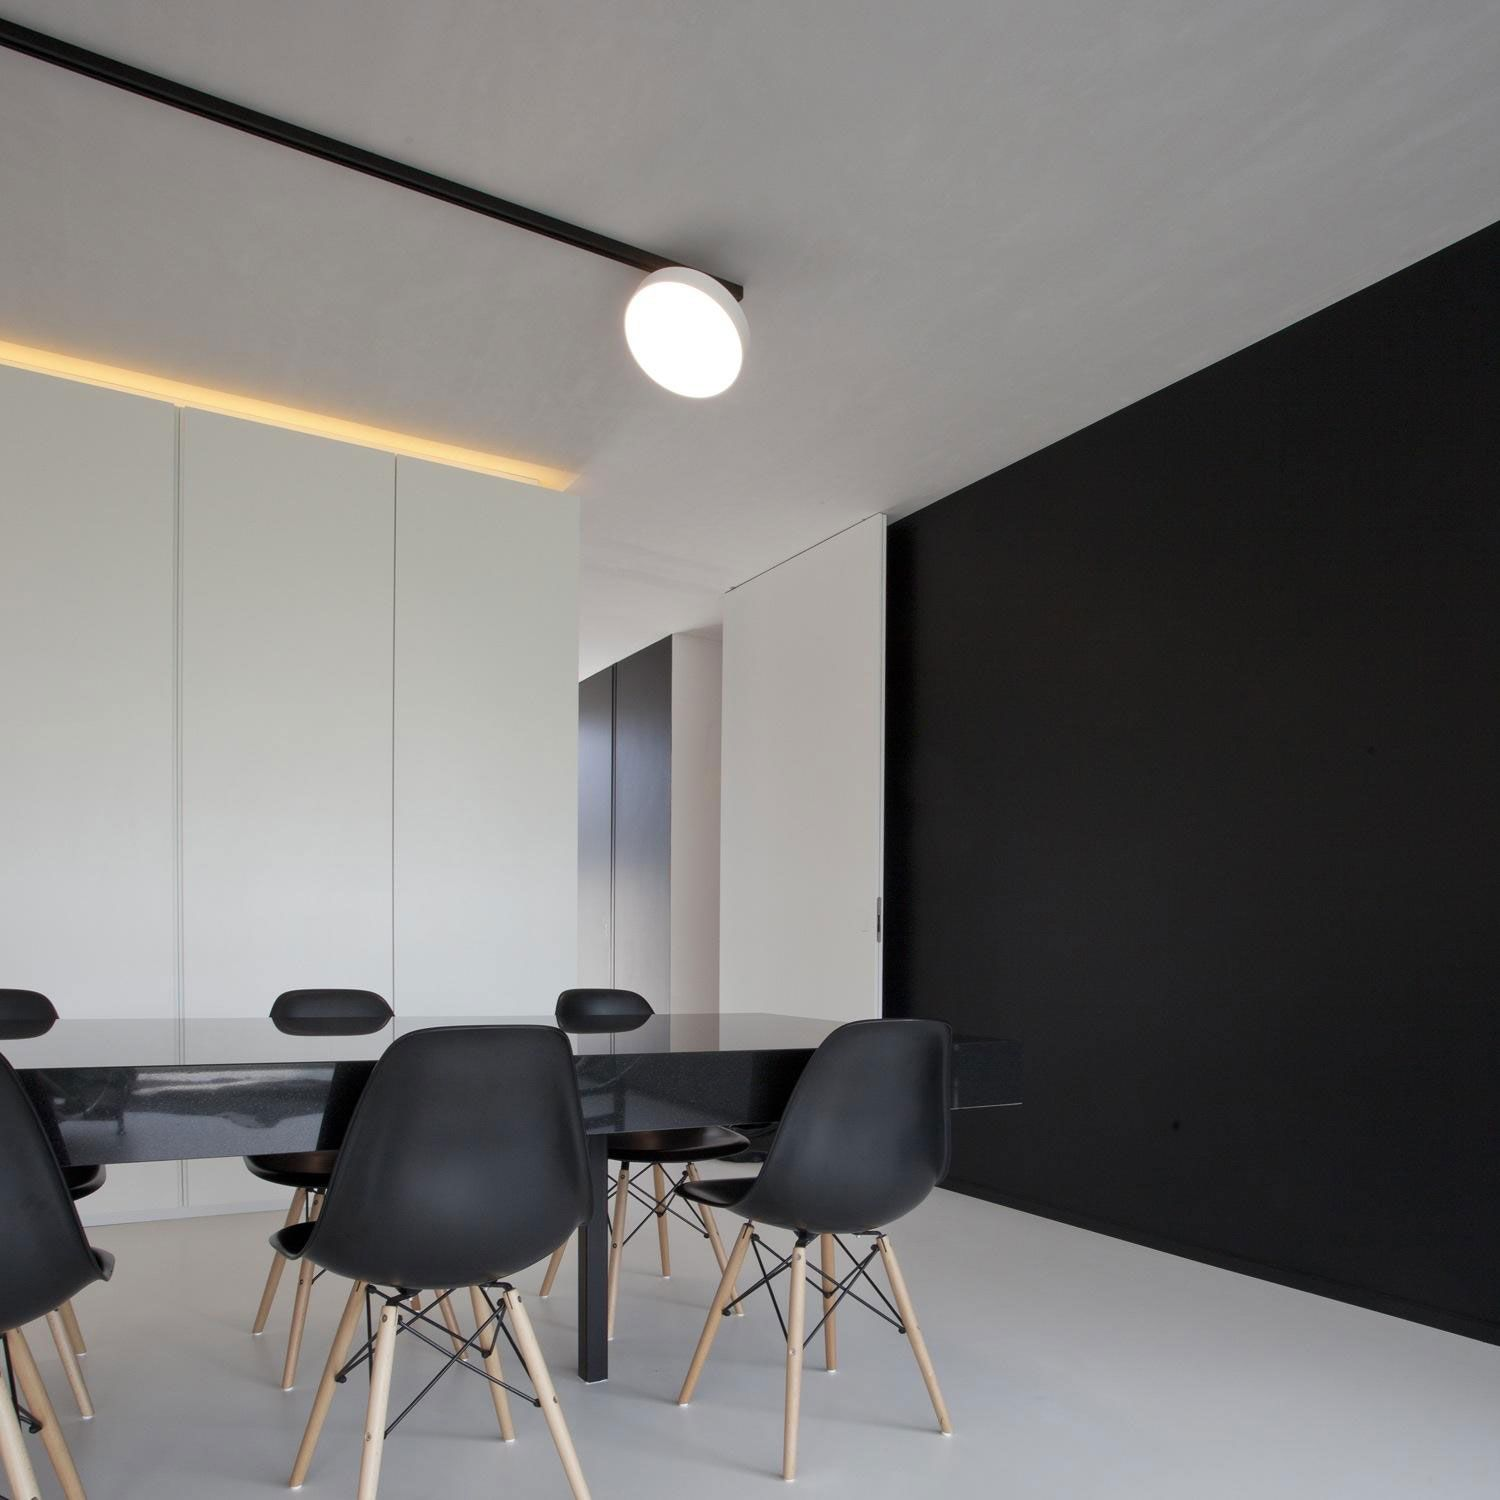 Appealing Veeckman Gelis house interior with Brick Wall Exterior #architecture #interior #freestandingbathroom #contemporarydiningtable find out more pictures here: http://reizco.com/appealing-veeckman-gelis-house-with-brick-wall-exterior-design/